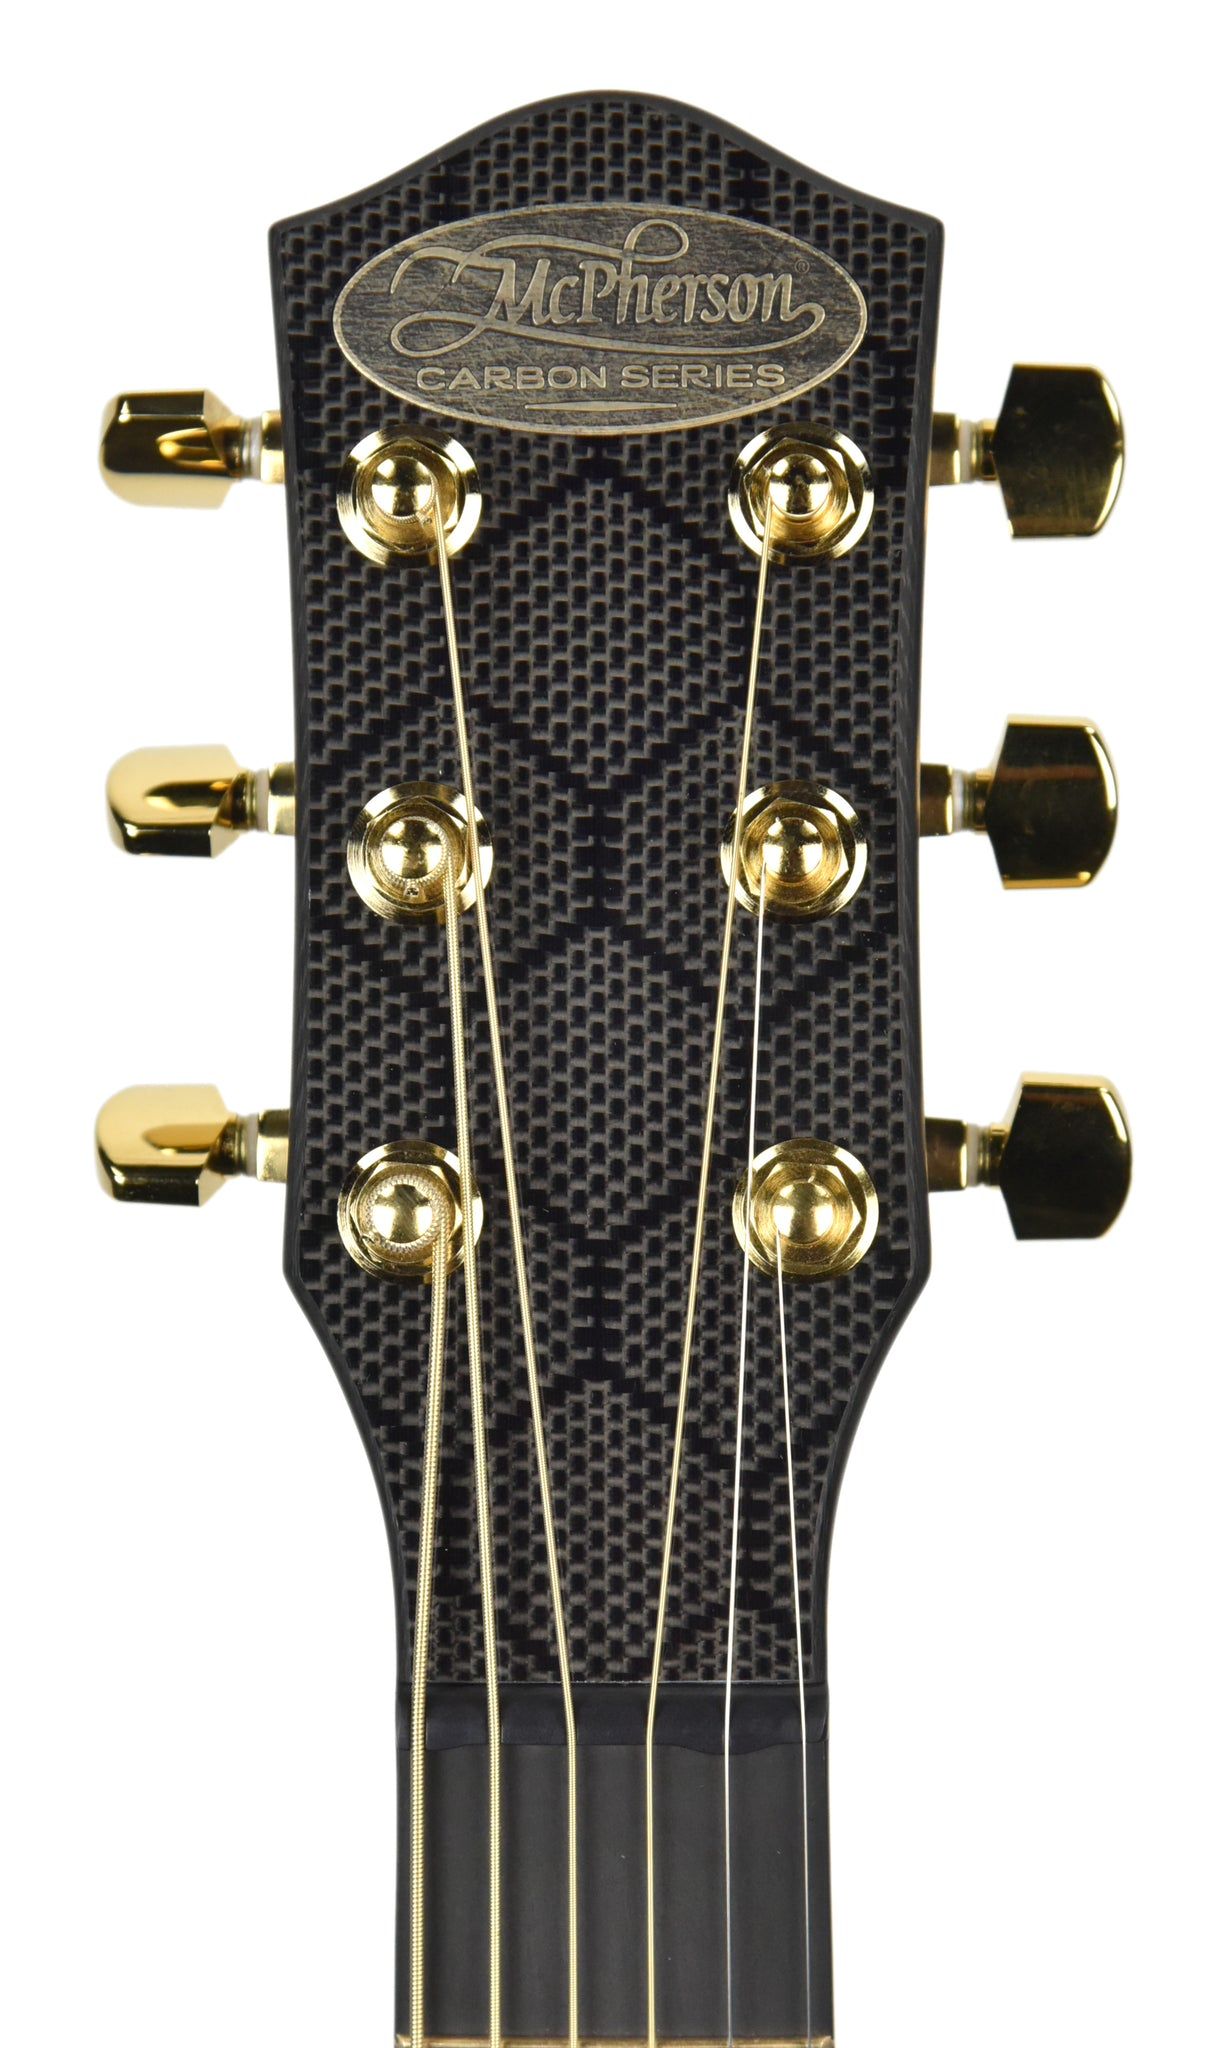 seo insights mcpherson touring carbon fiber acoustic guitar in honeycomb black 10009 headstock front. Black Bedroom Furniture Sets. Home Design Ideas